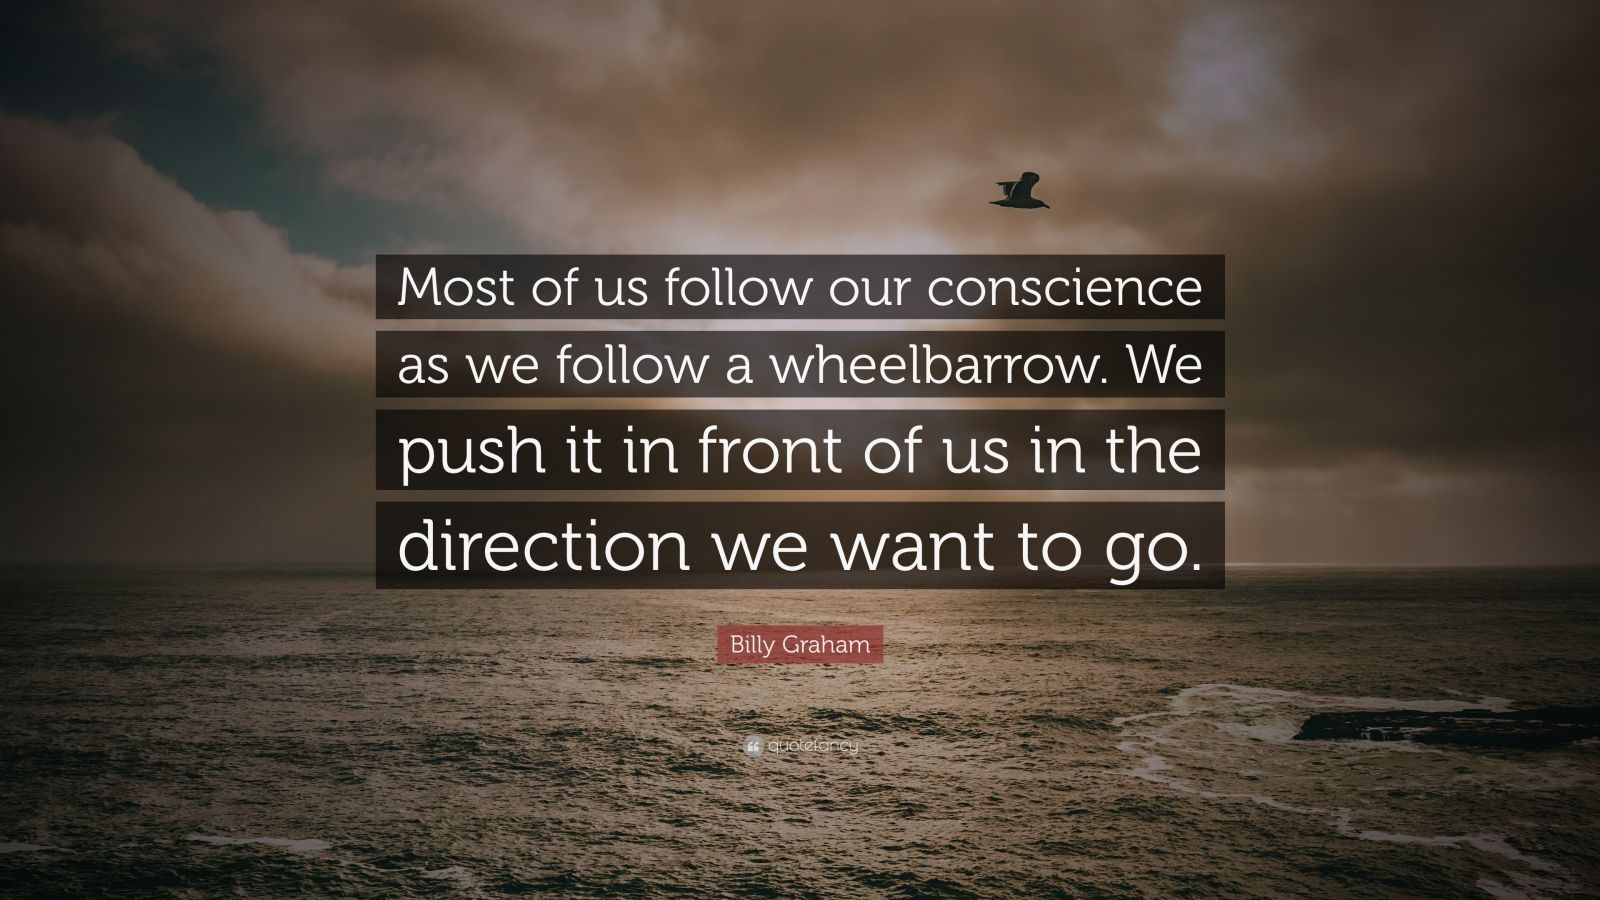 """Billy Graham Quote: """"Most of us follow our conscience as we follow a wheelbarrow. We push it in front of us in the direction we want to go."""""""